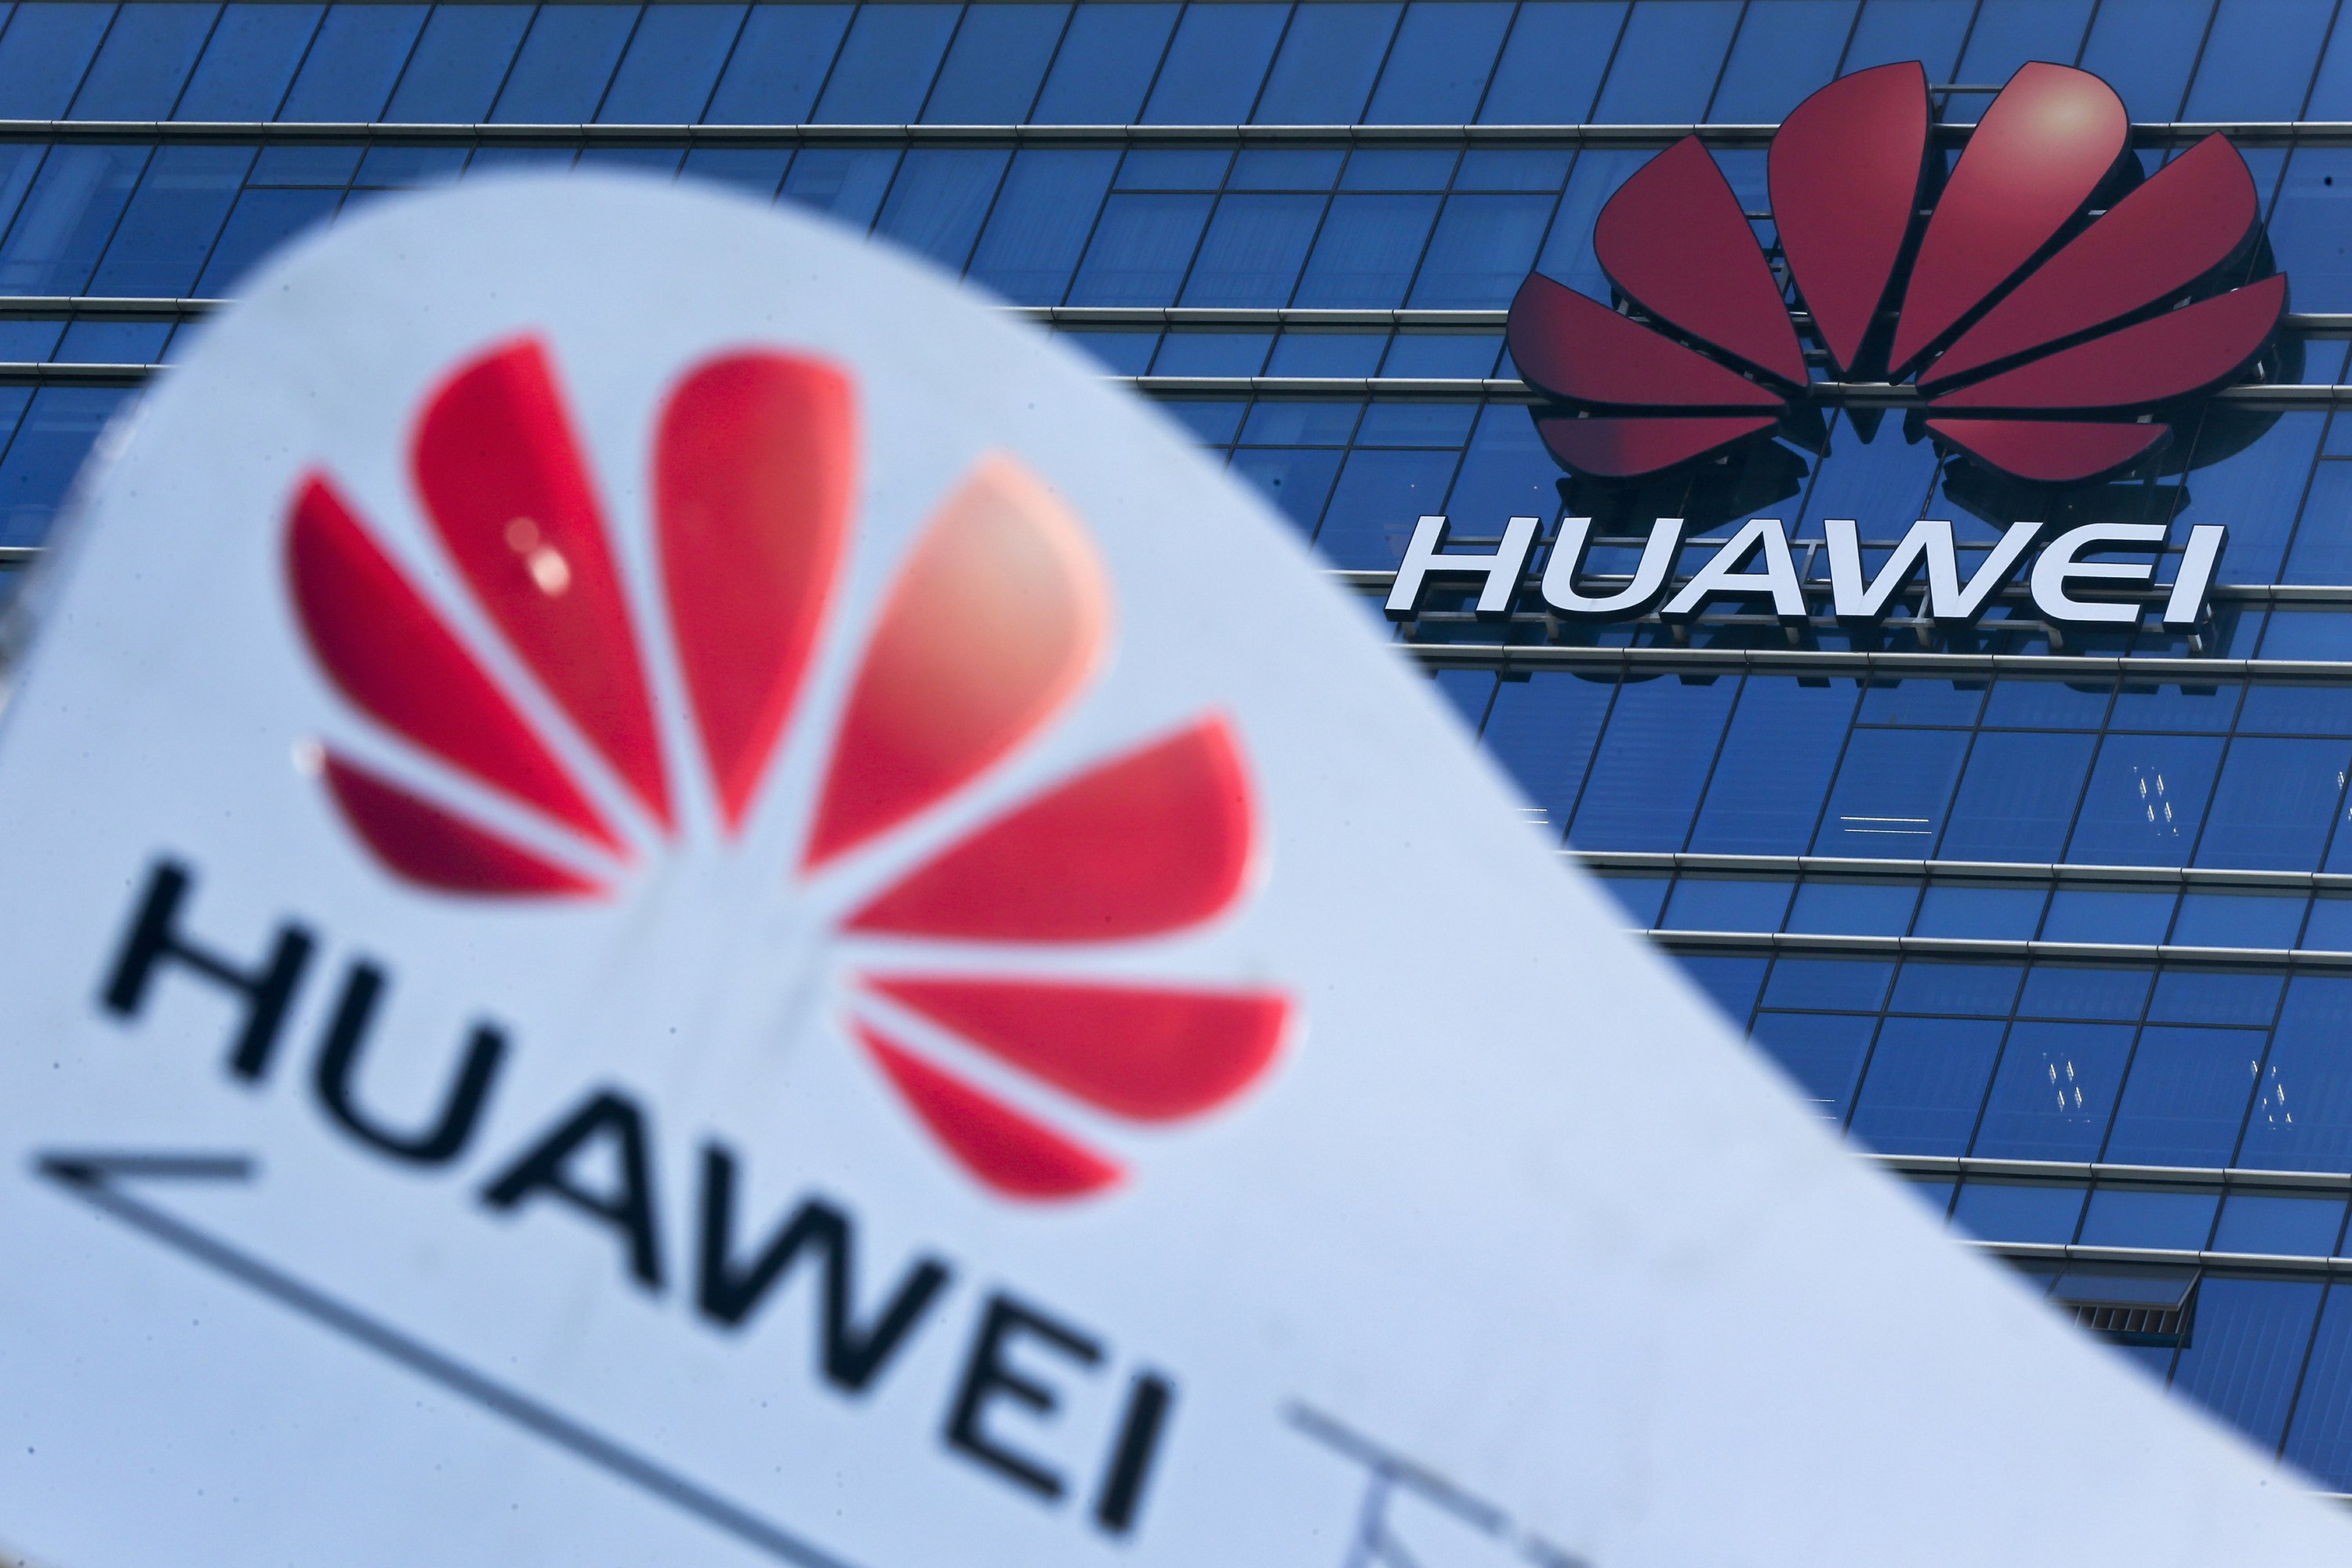 Huawei representative rebukes US ambassador's accusation, defends integrity and safety